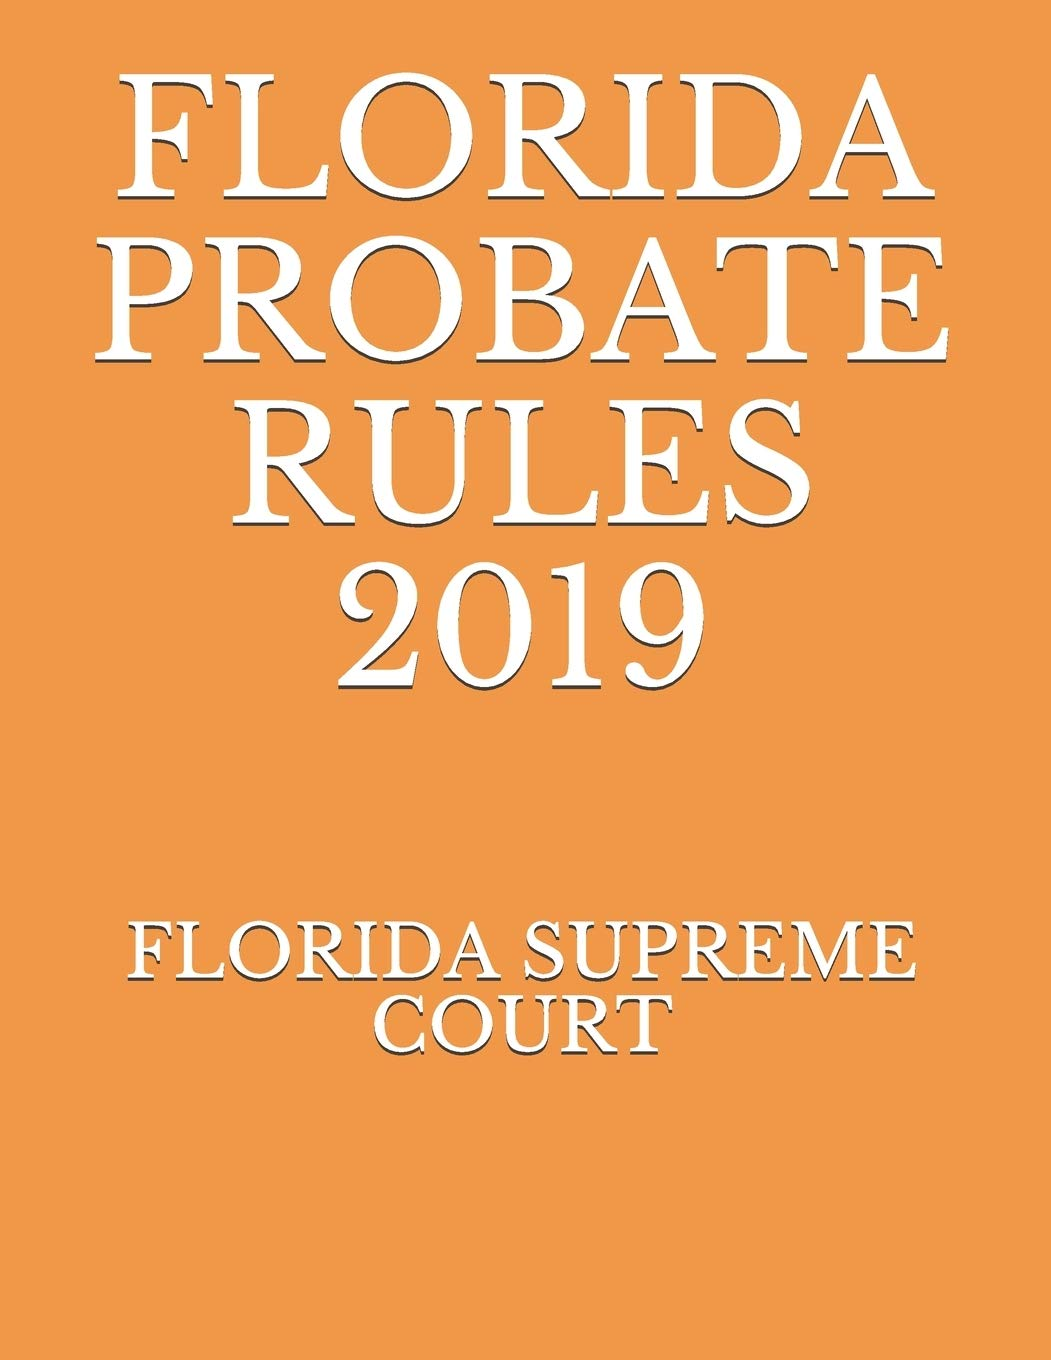 Image OfFLORIDA PROBATE RULES 2019